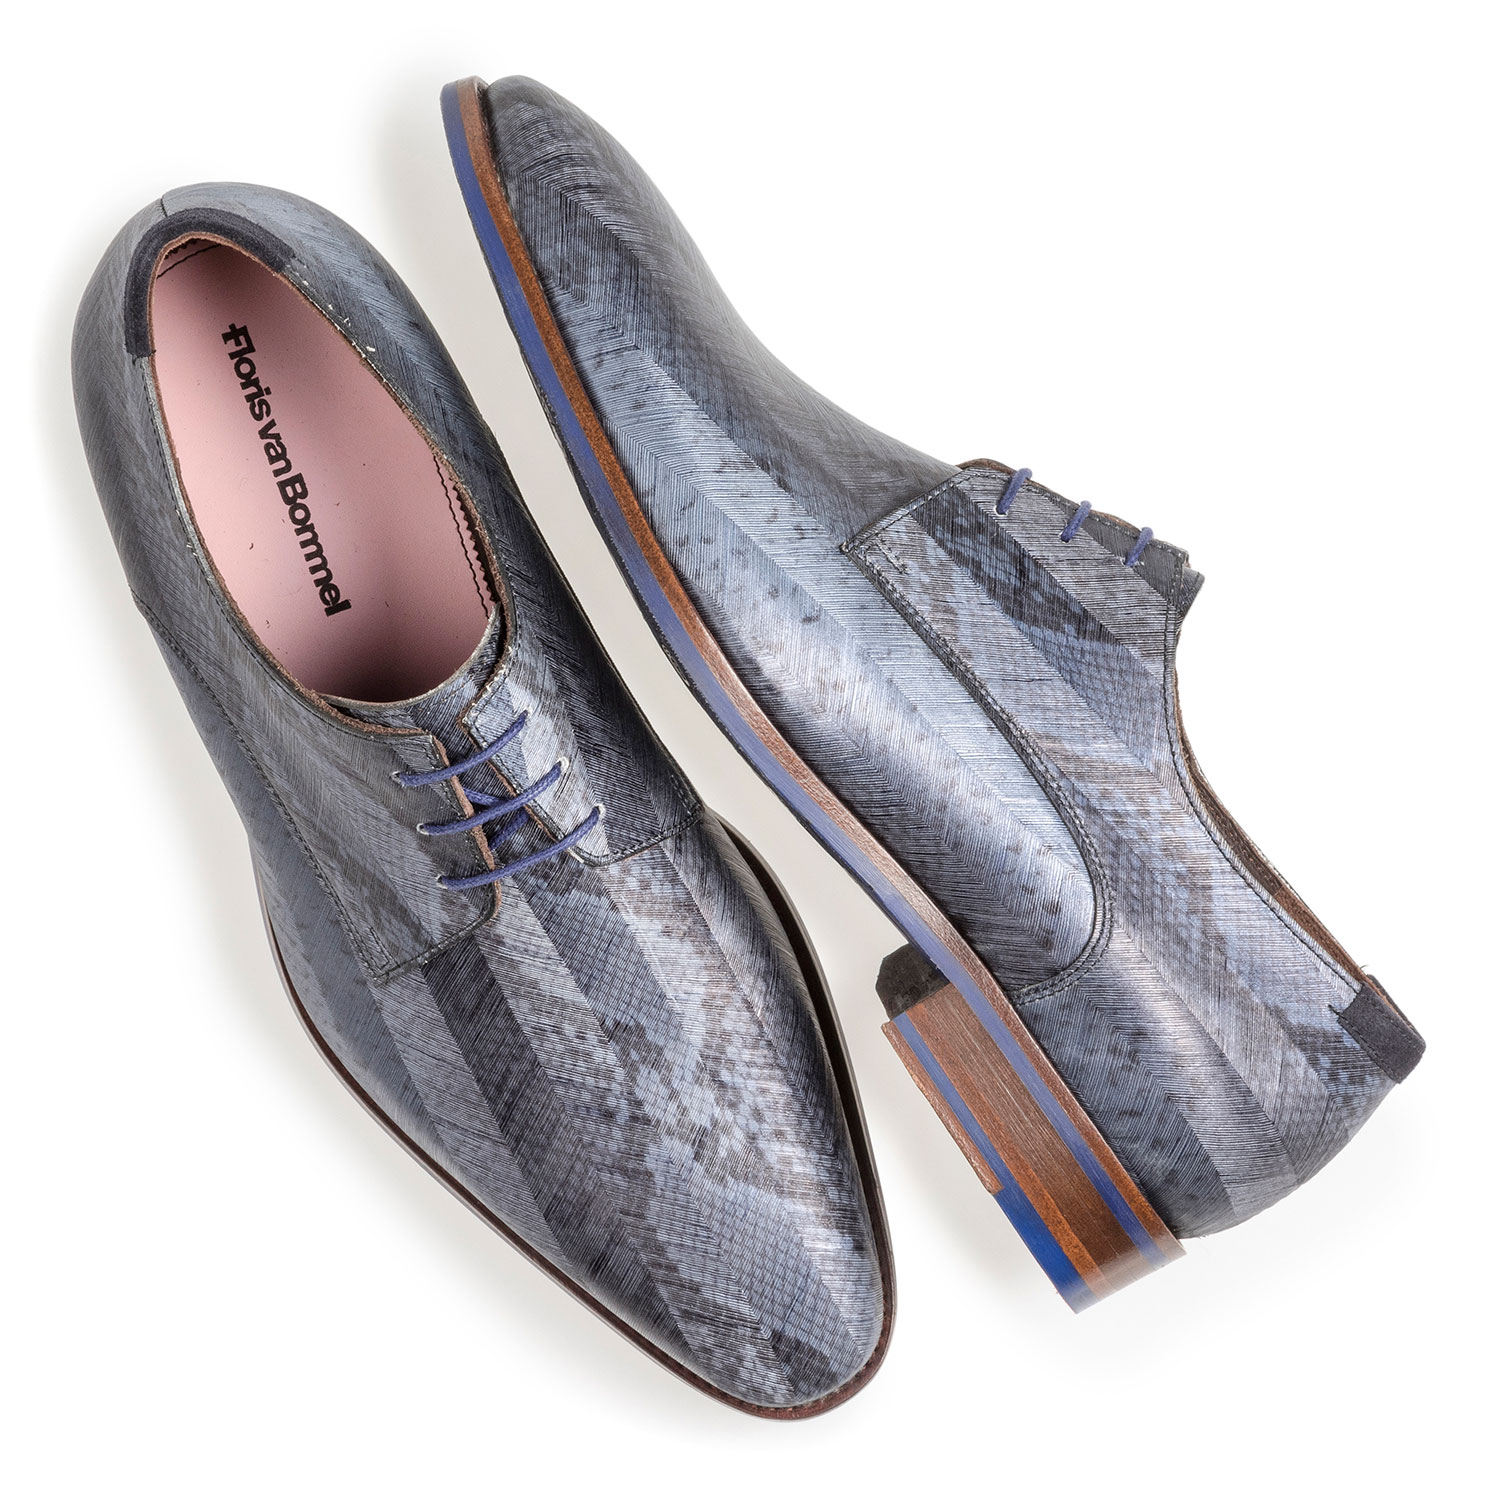 18297/01 - Grey patent leather lace shoe with snake print